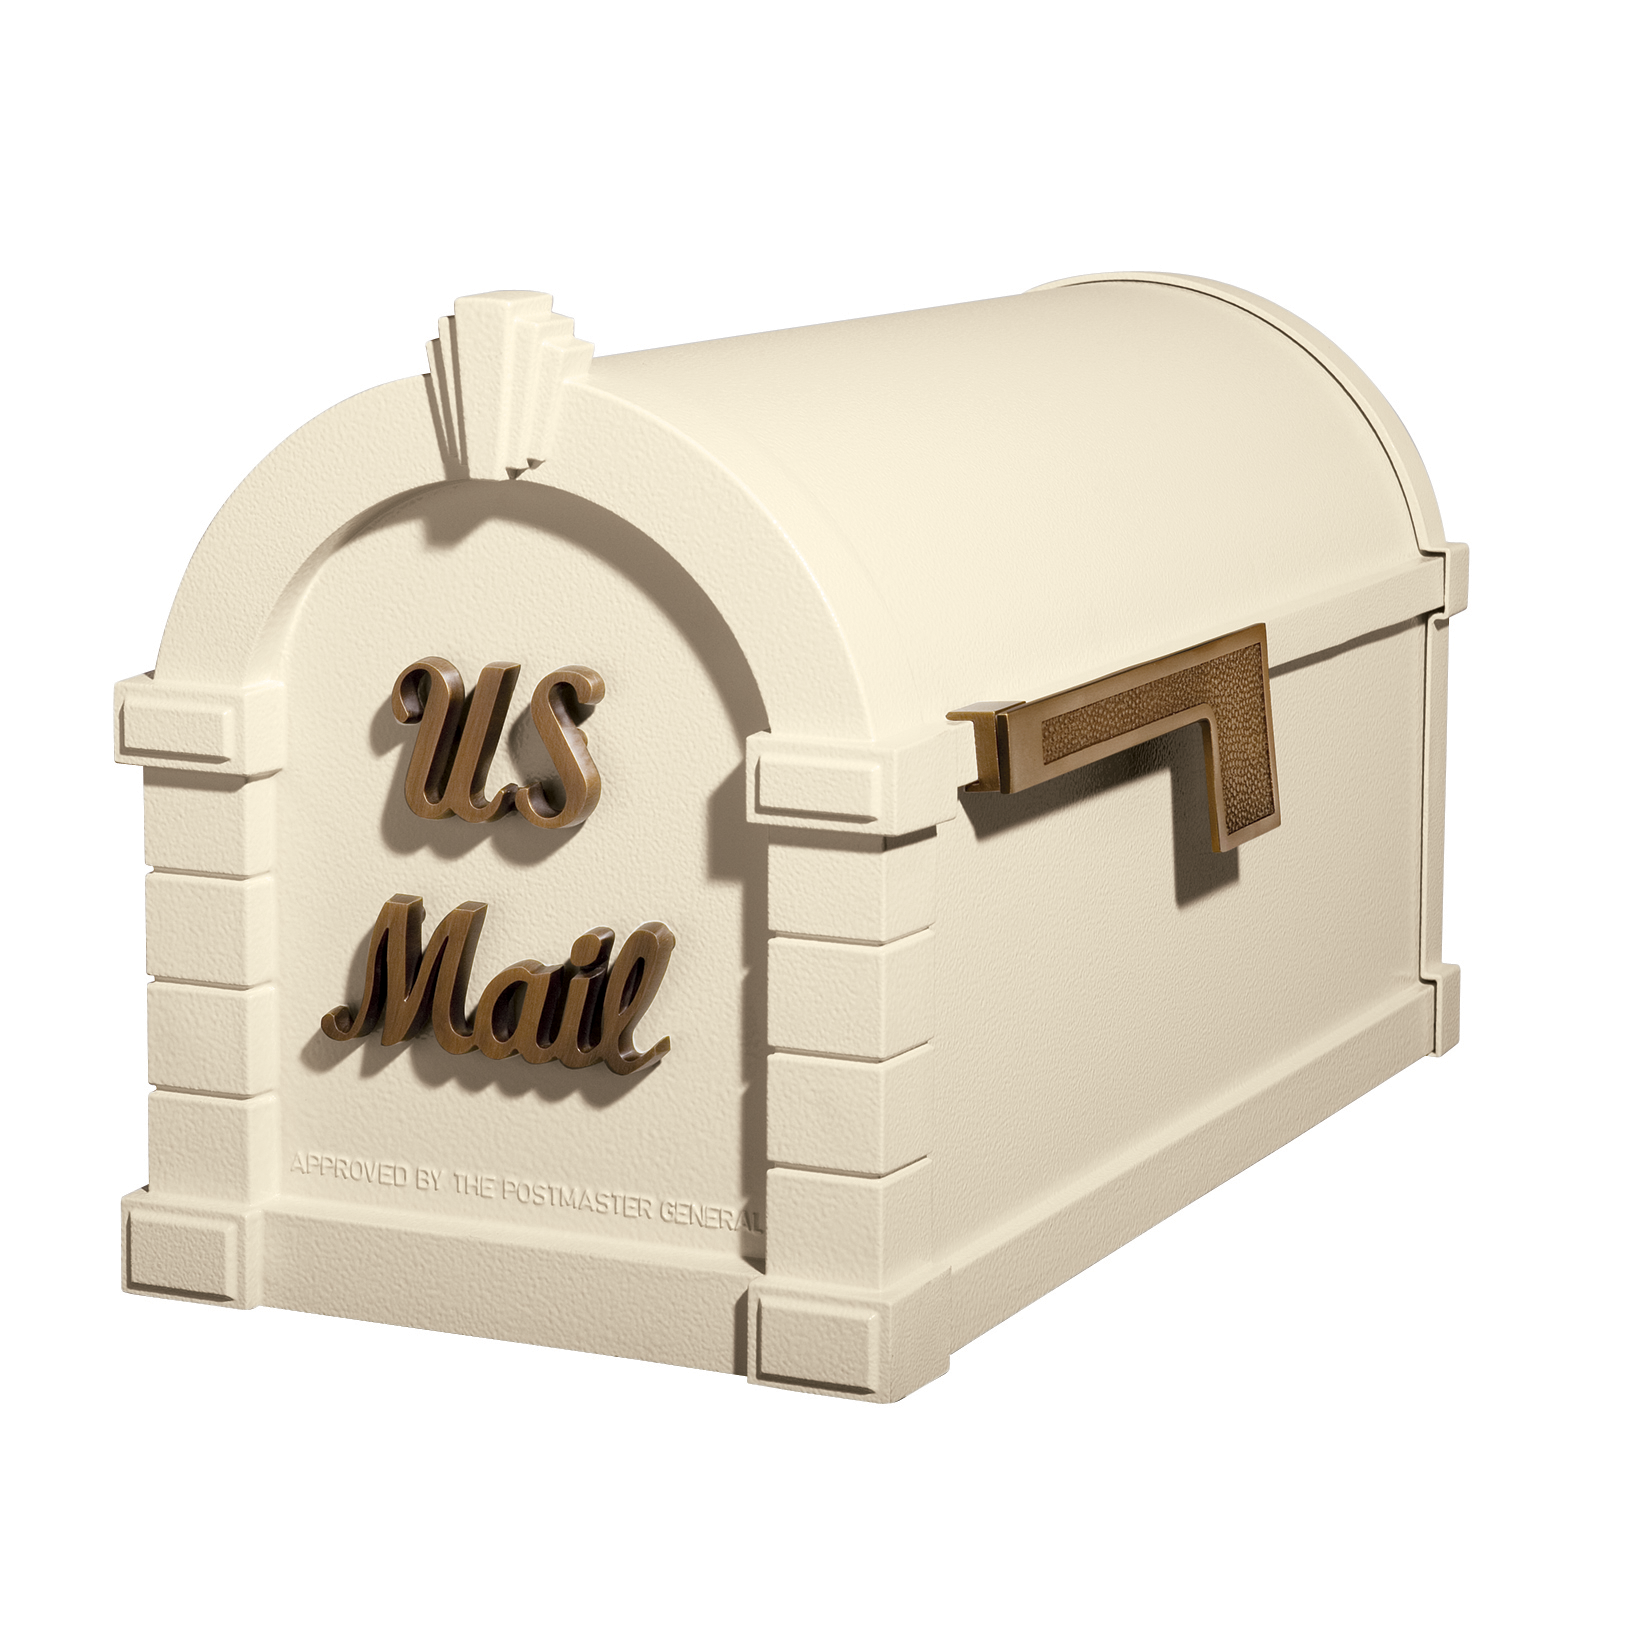 Gaines Signature Keystone Mailboxes - Almond with Antique Bronze